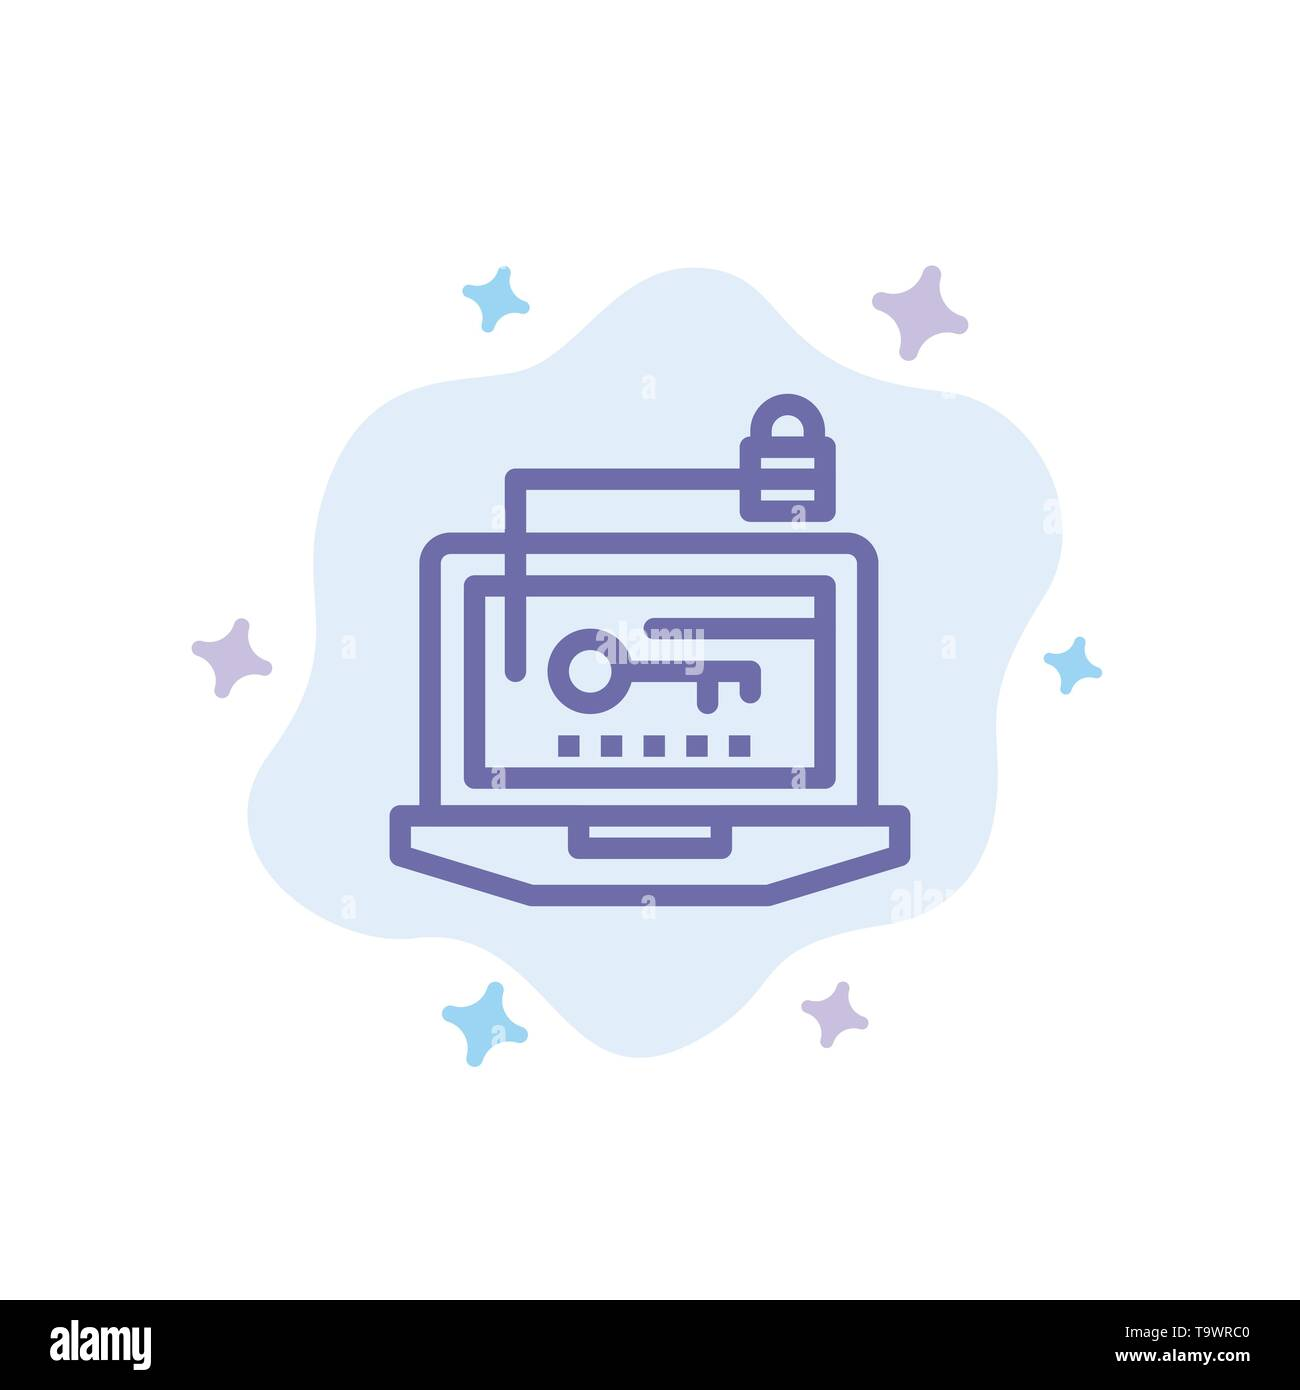 Access, Computer, Hardware, Key, Laptop Blue Icon on Abstract Cloud Background - Stock Image